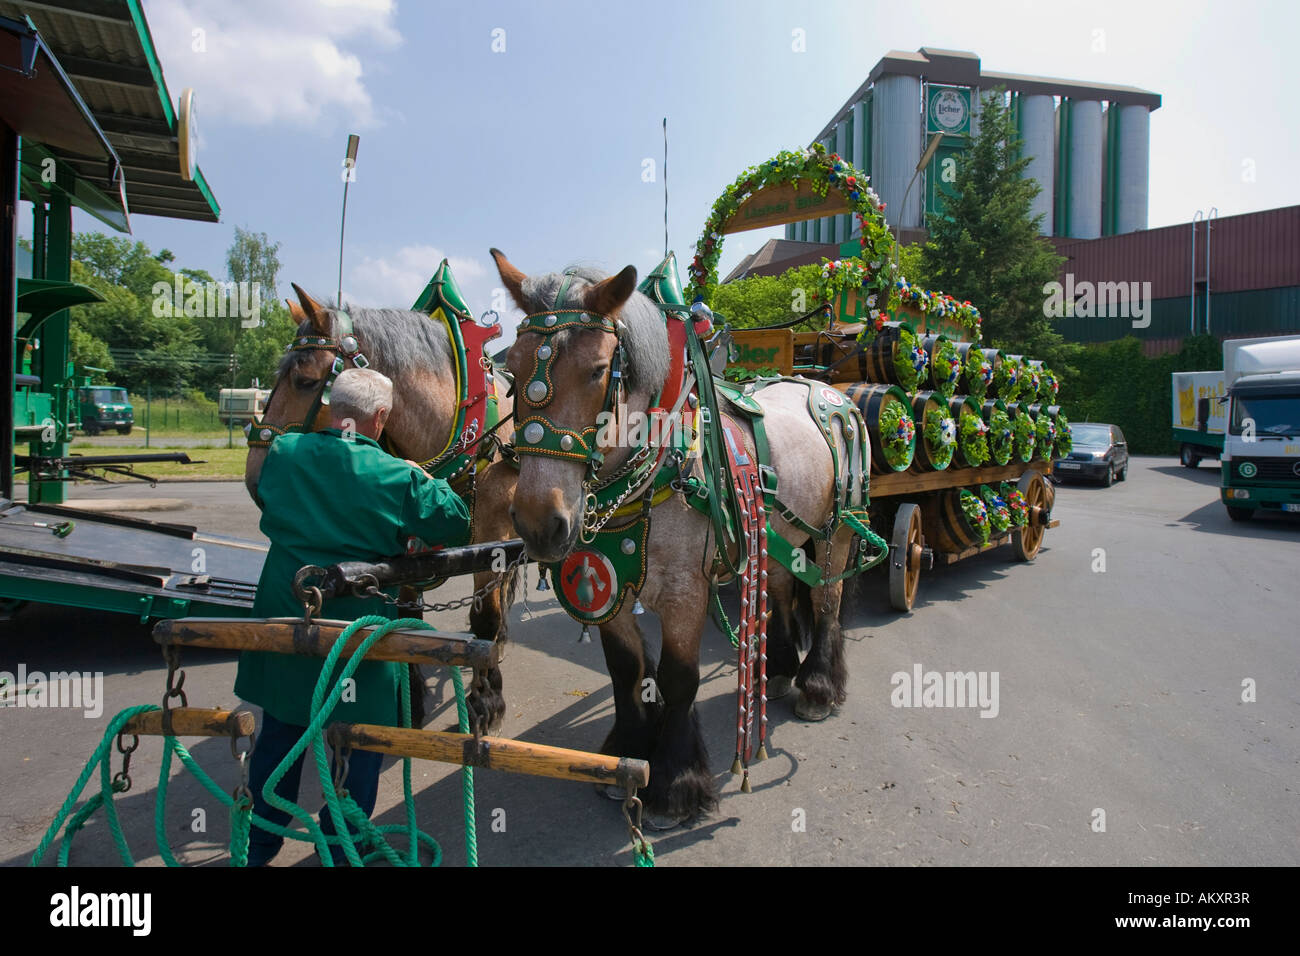 Brewery horse of the Licher brewery, Lich, Germany. - Stock Image